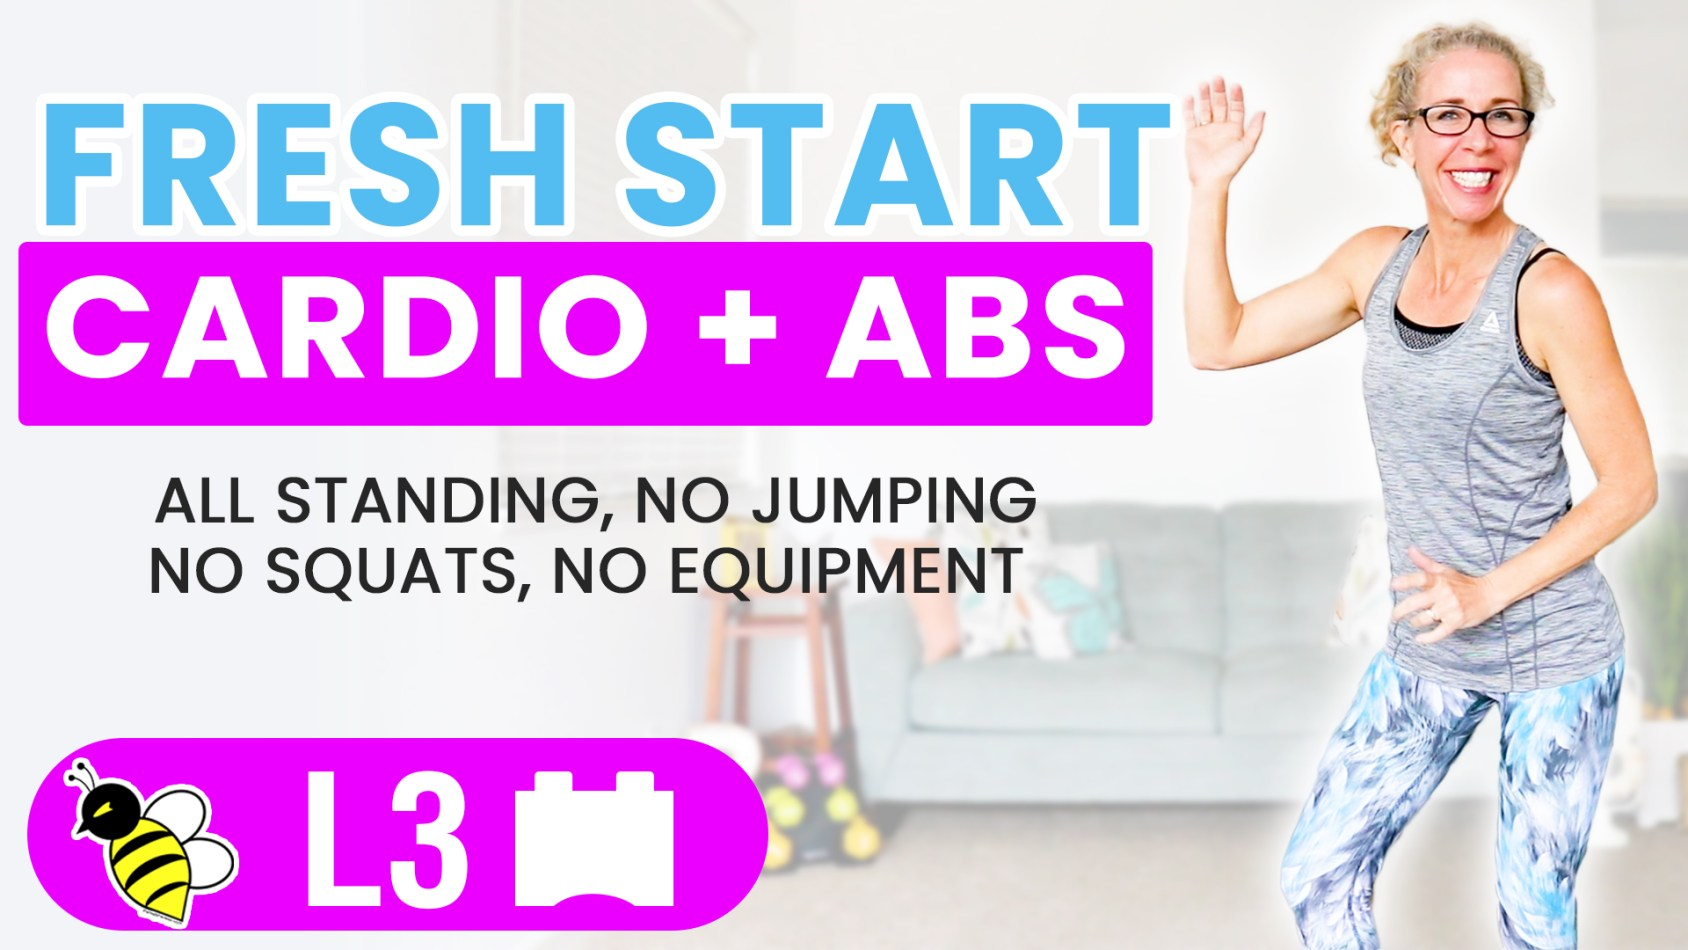 FUN Fresh Start CARDIO + Standing ABS 10 minute LOW IMPACT workout